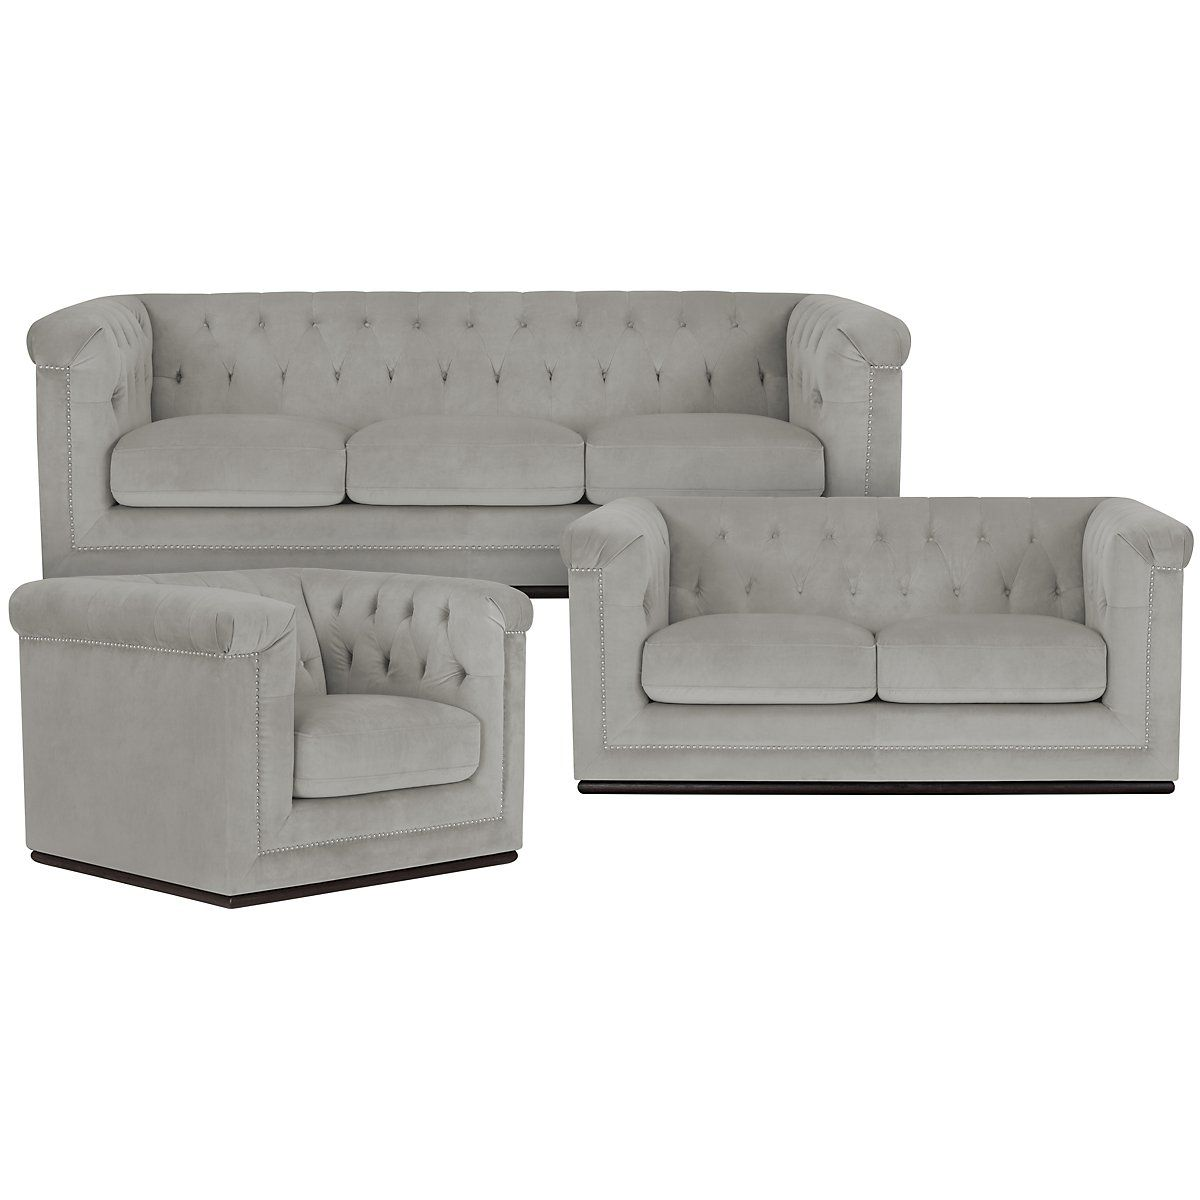 Image Result For Grey Microfiber Sofa